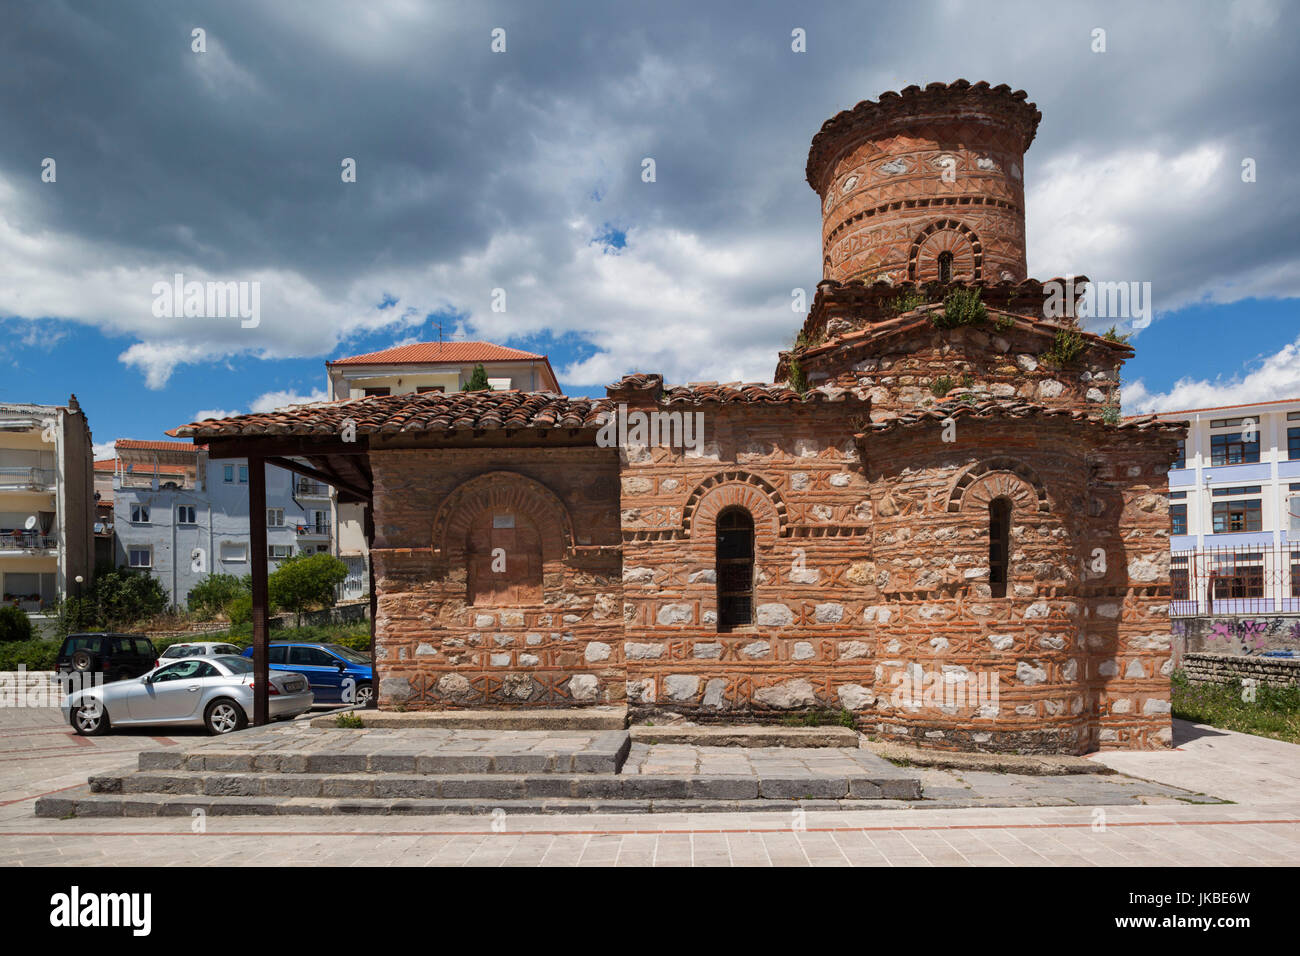 Greece, West Macedonia Region, Kastoria, Panagia Koubelidiki church, built in the 9th century AD and emblem of the - Stock Image